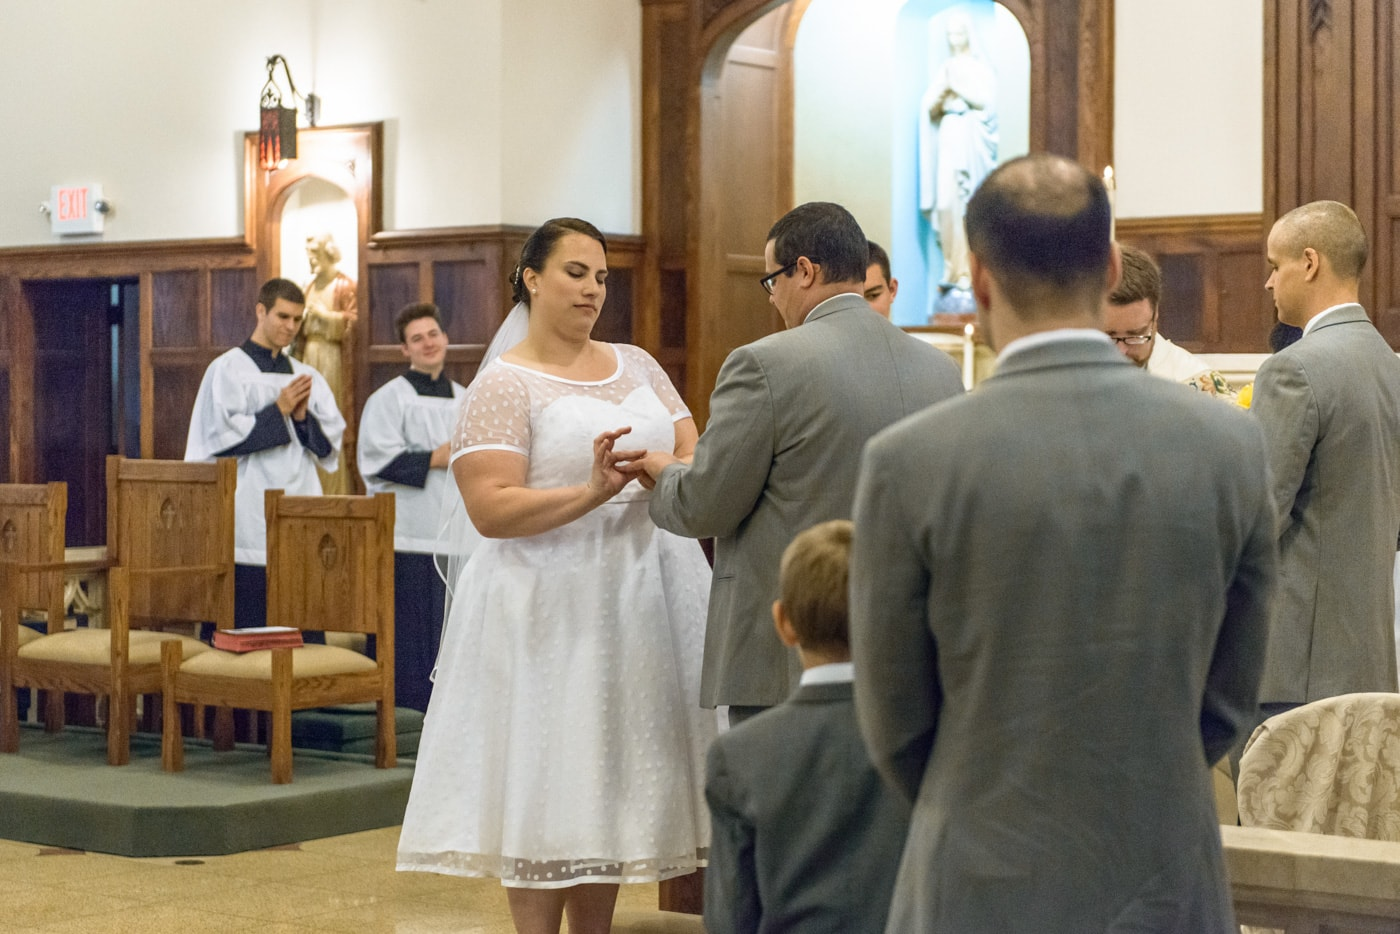 The bride puts the ring on the groom's finger during exchanging of rings at wedding at St James Catholic Church in Fairfax, Virginia